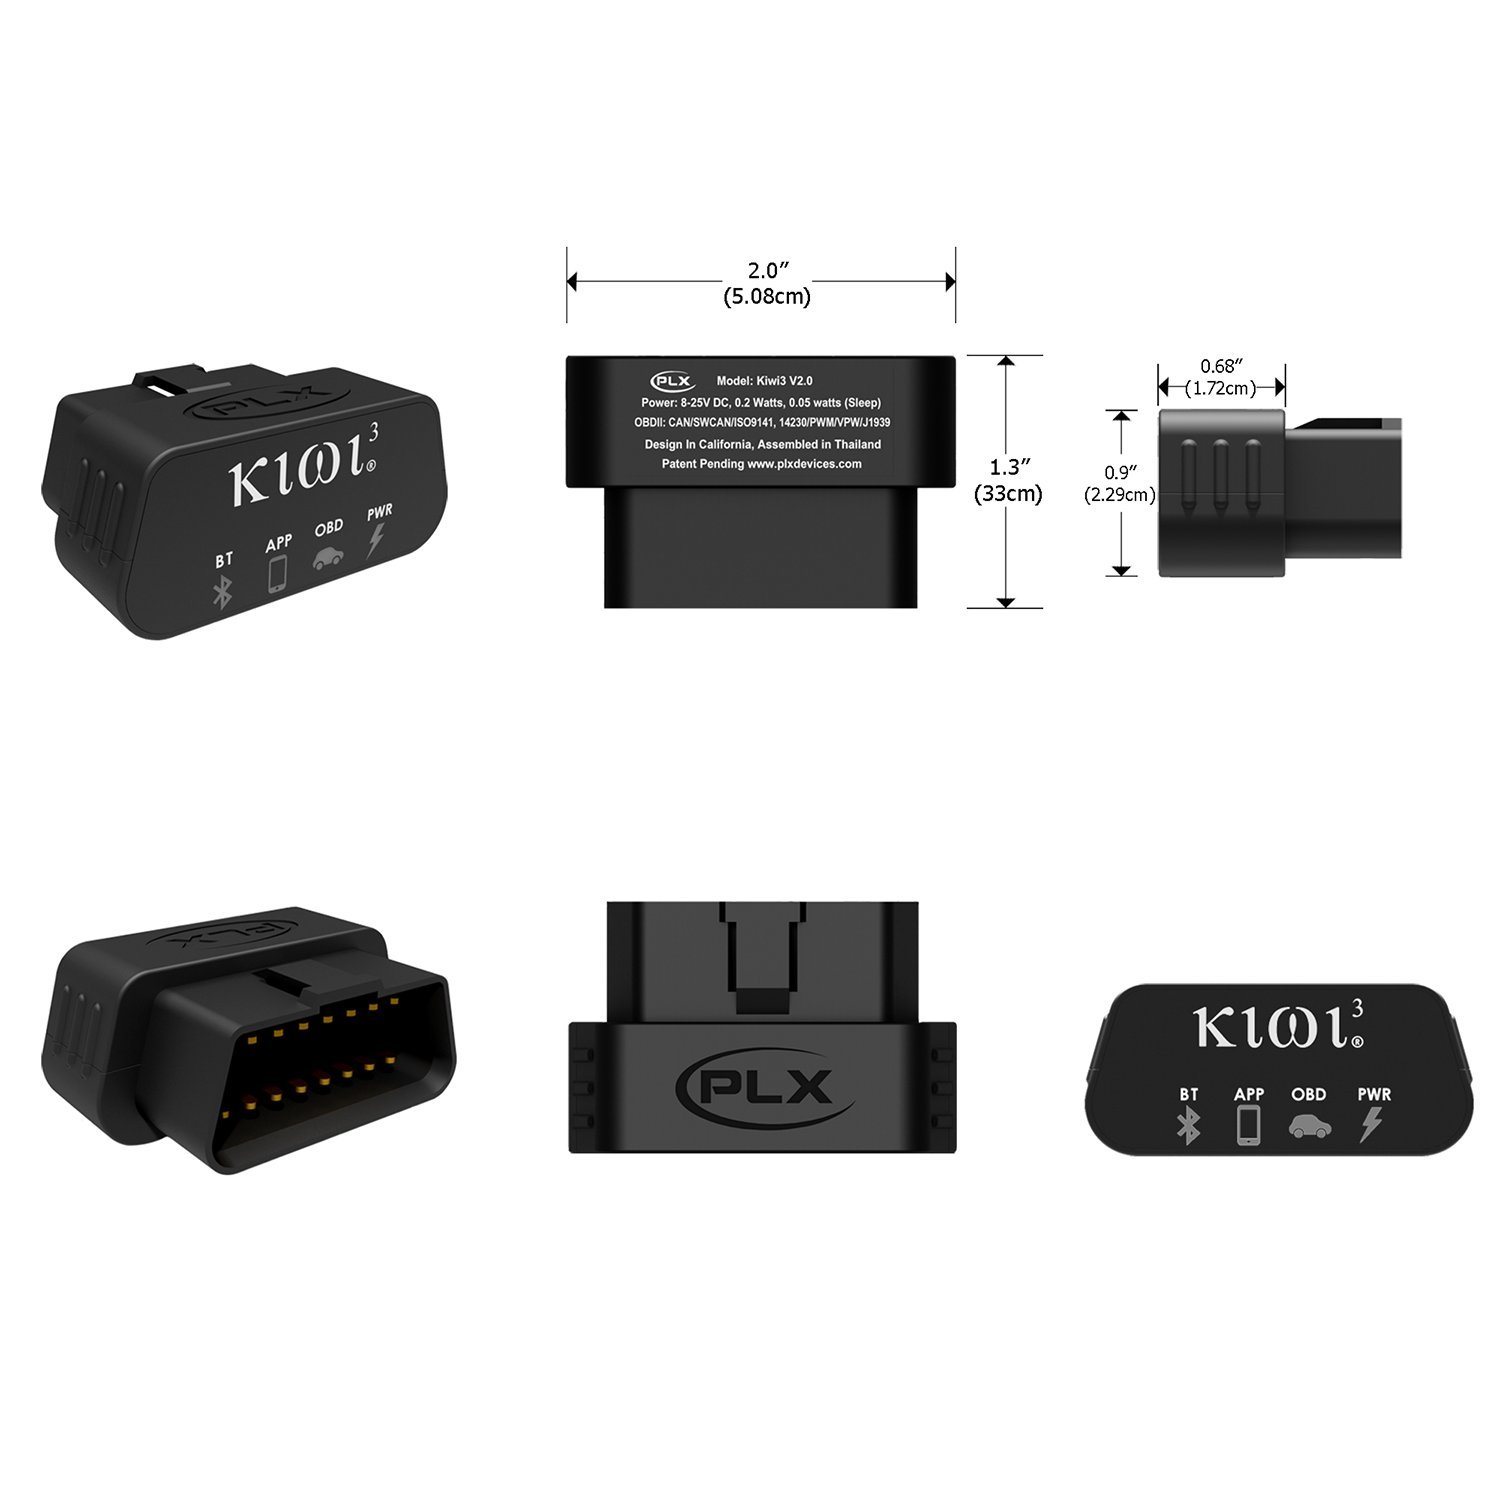 PLX Devices Kiwi 3 Bluetooth OBD2 OBDII Diagnostic Scan Tool for Android, Apple, Windows Mobile by PLX Devices (Image #2)